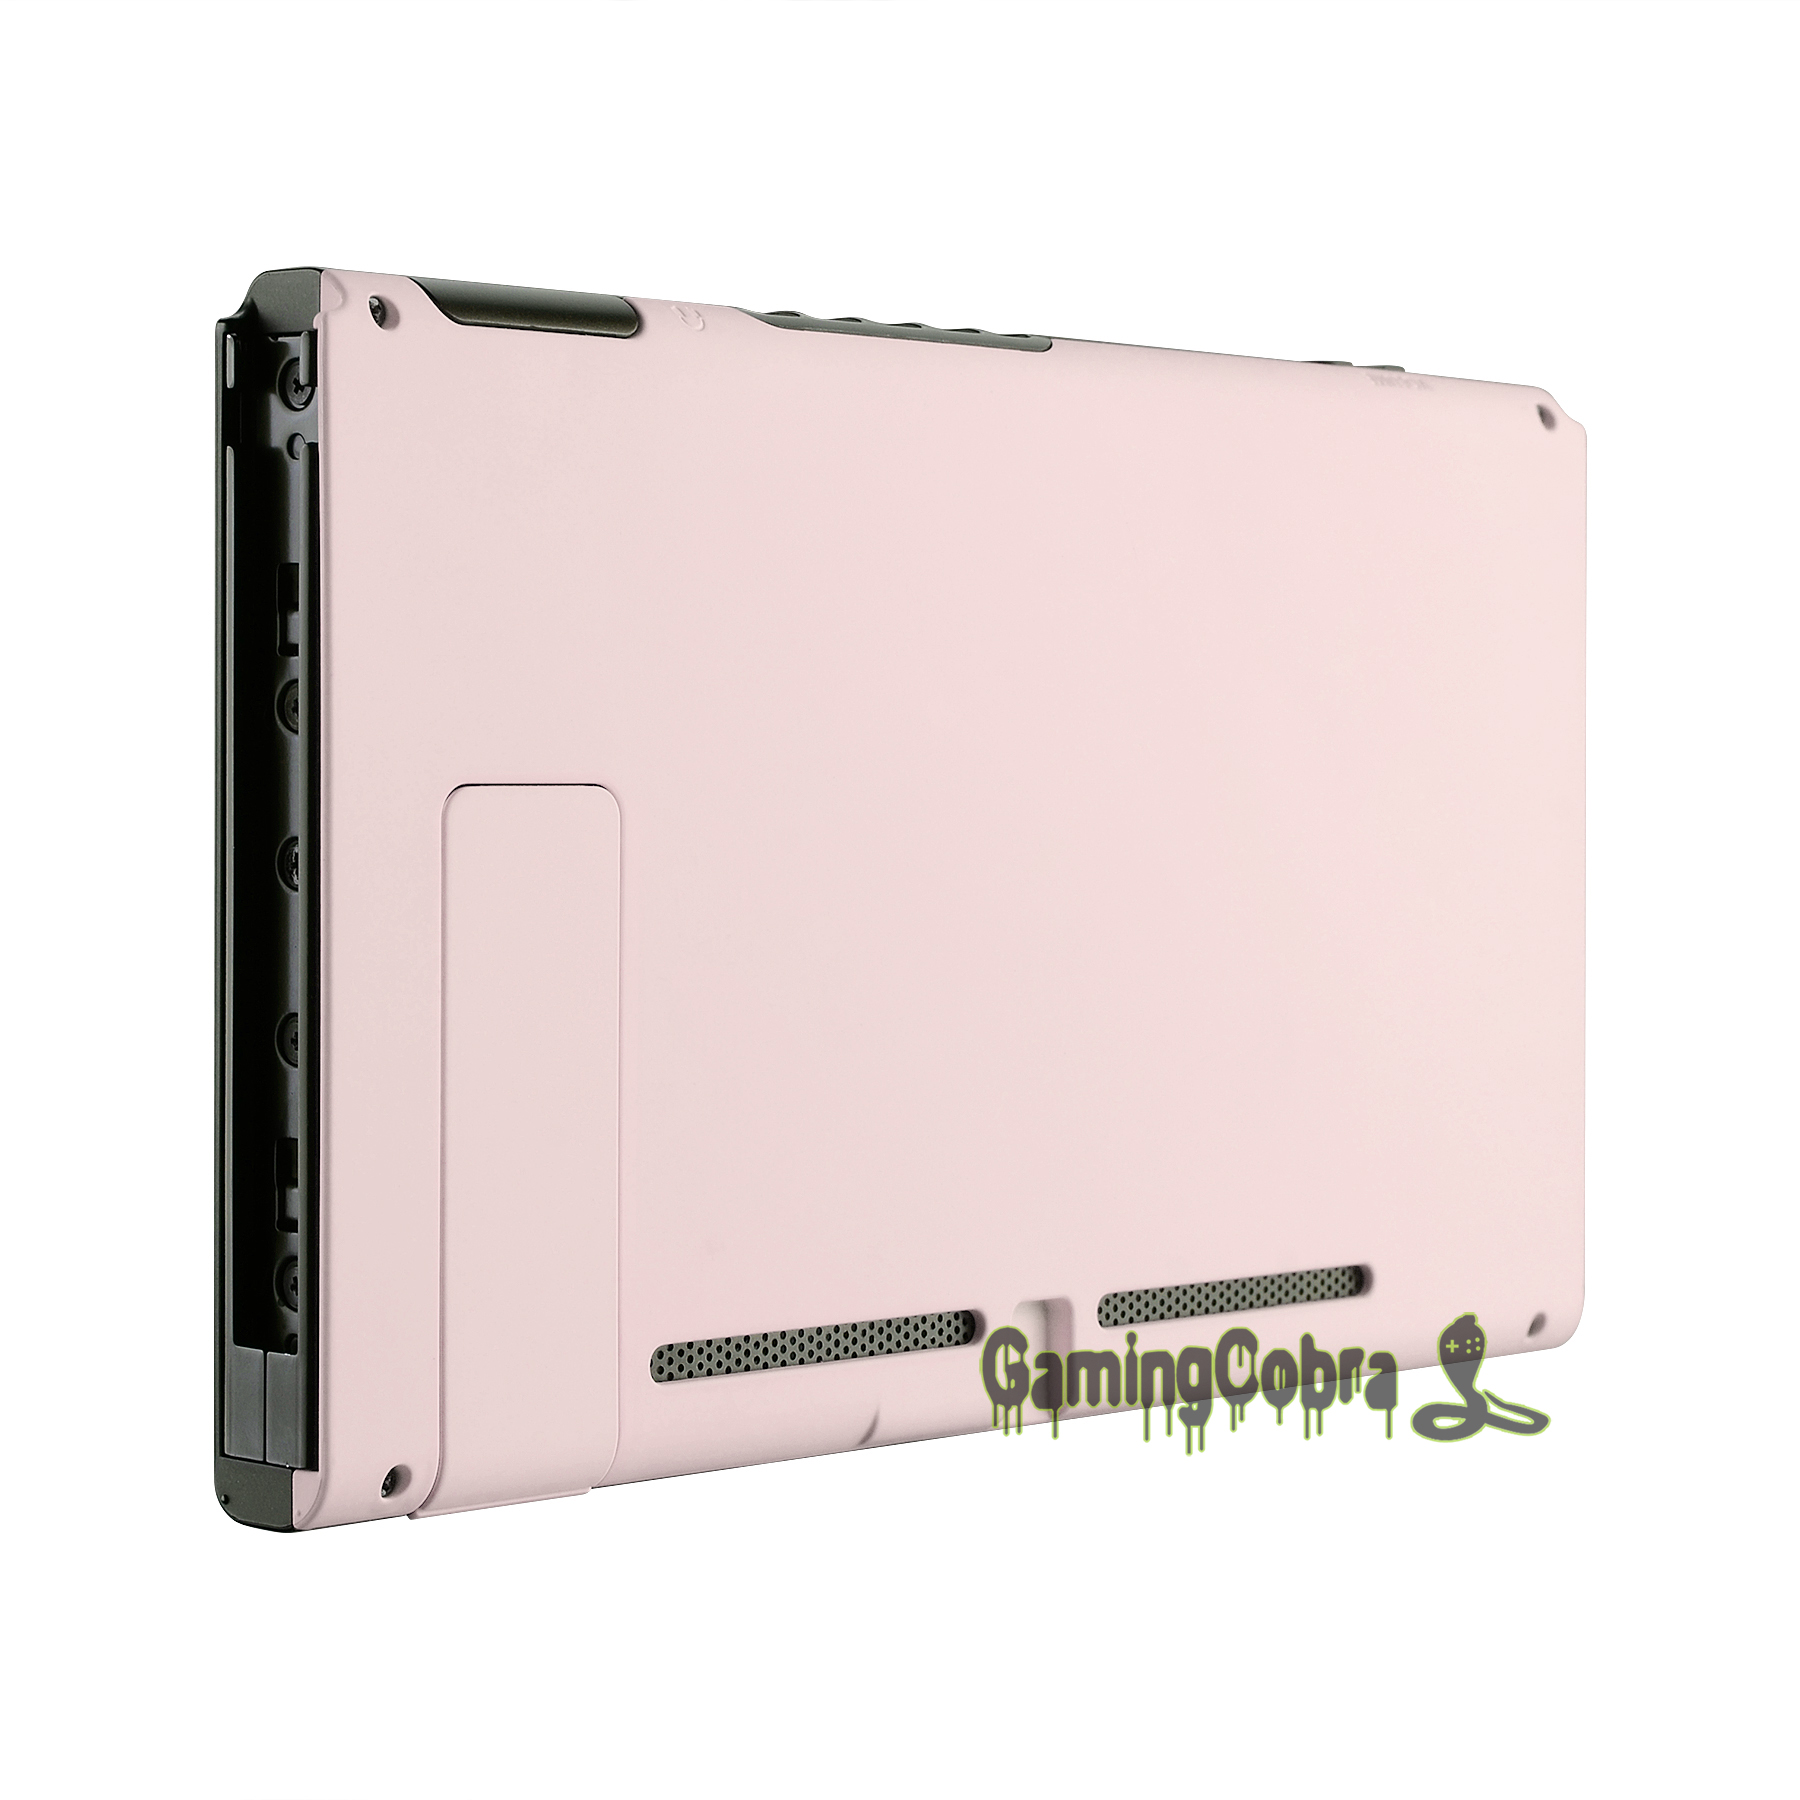 Soft Touch Grip Sakura Pink Console Back Plate DIY Replacement Housing Shell Case for Nintendo Switch Console w/ Kickstand ZP306